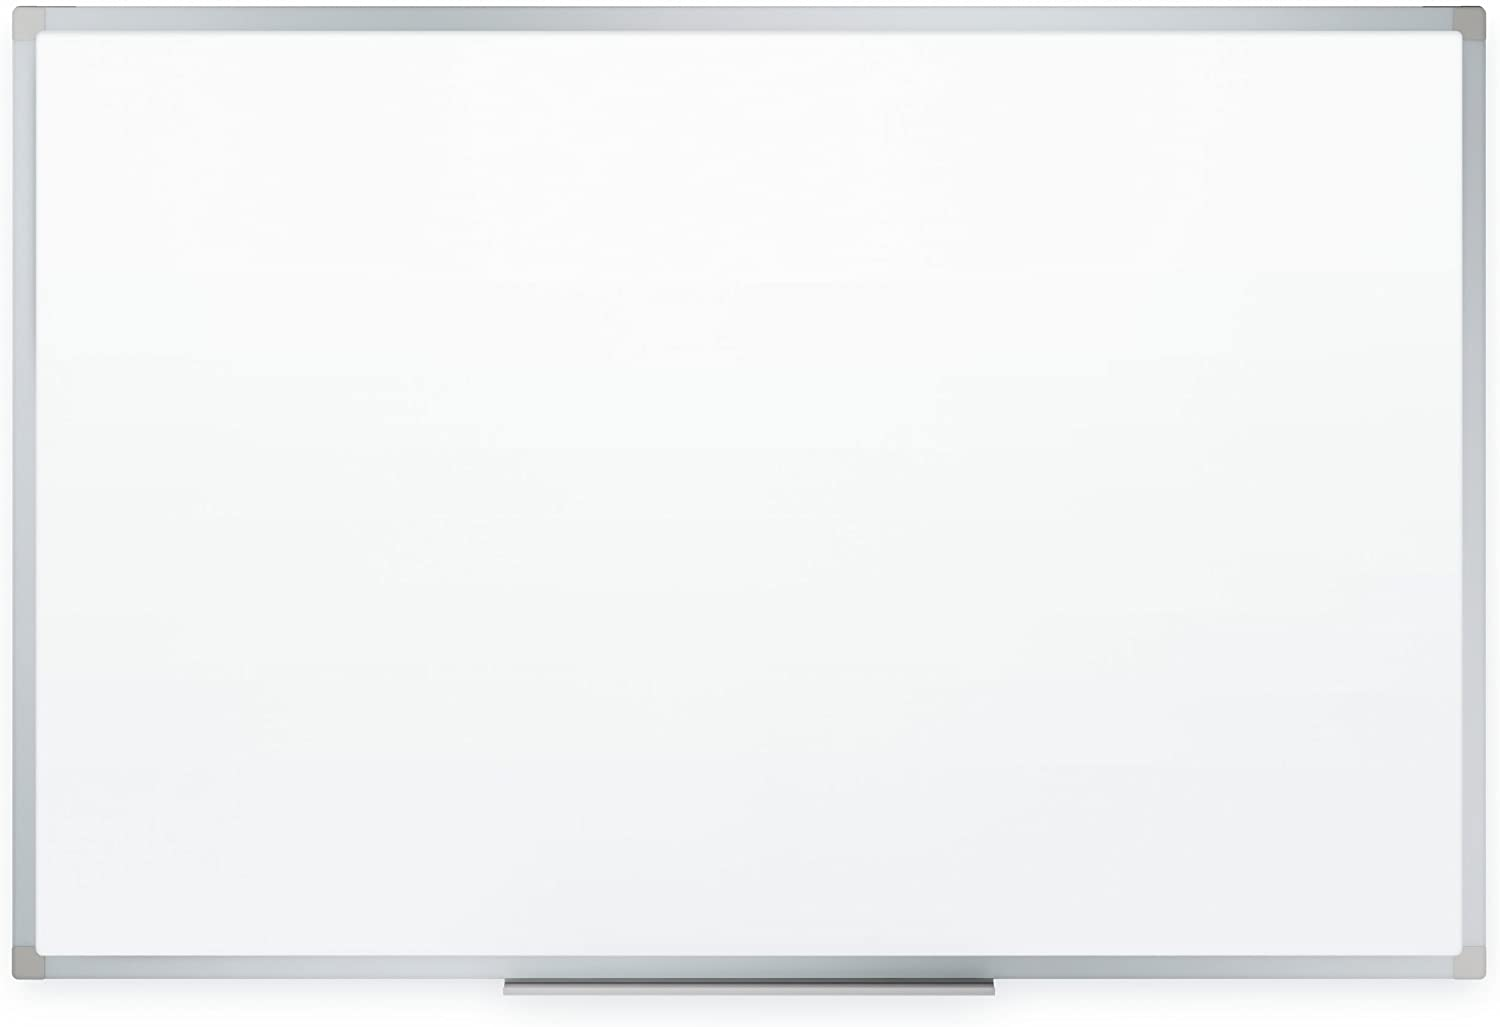 Mead Dry Erase Board, Whiteboard / White Board, 24 x 18 inches, Silver Finish Aluminum Frame (85355) : Office Products